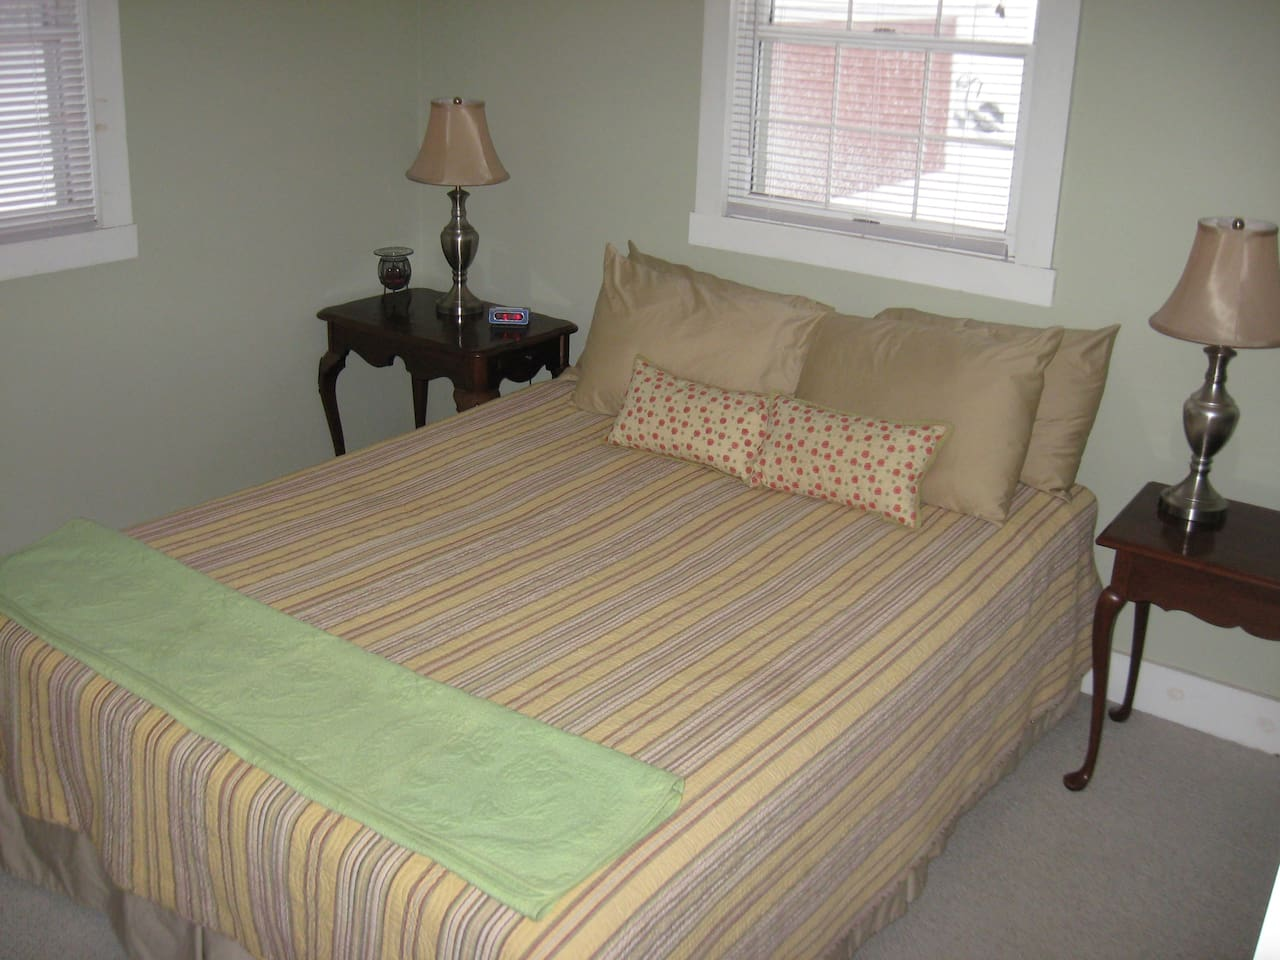 Queen size bed in 10x12 bedroom